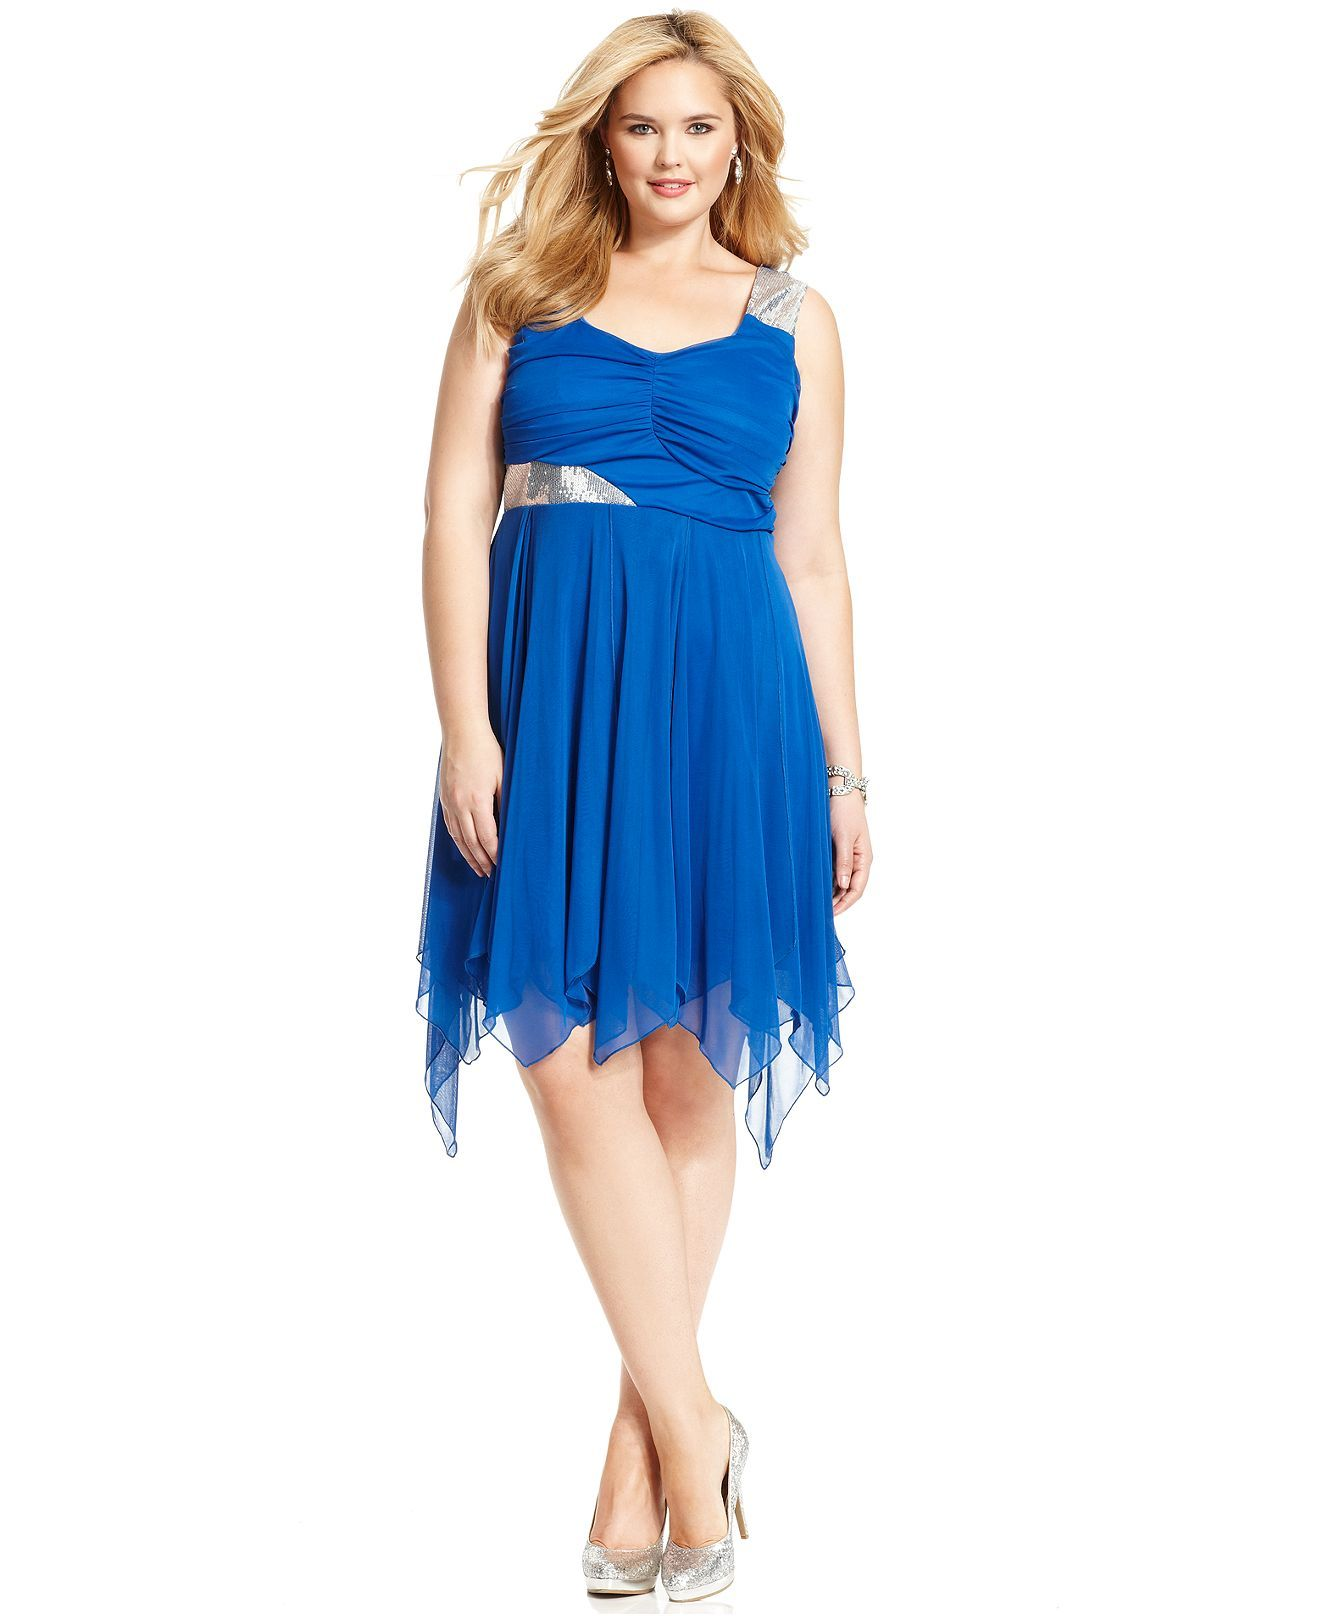 ruby rox plus size sleeveless ruched sequin dress - plus size